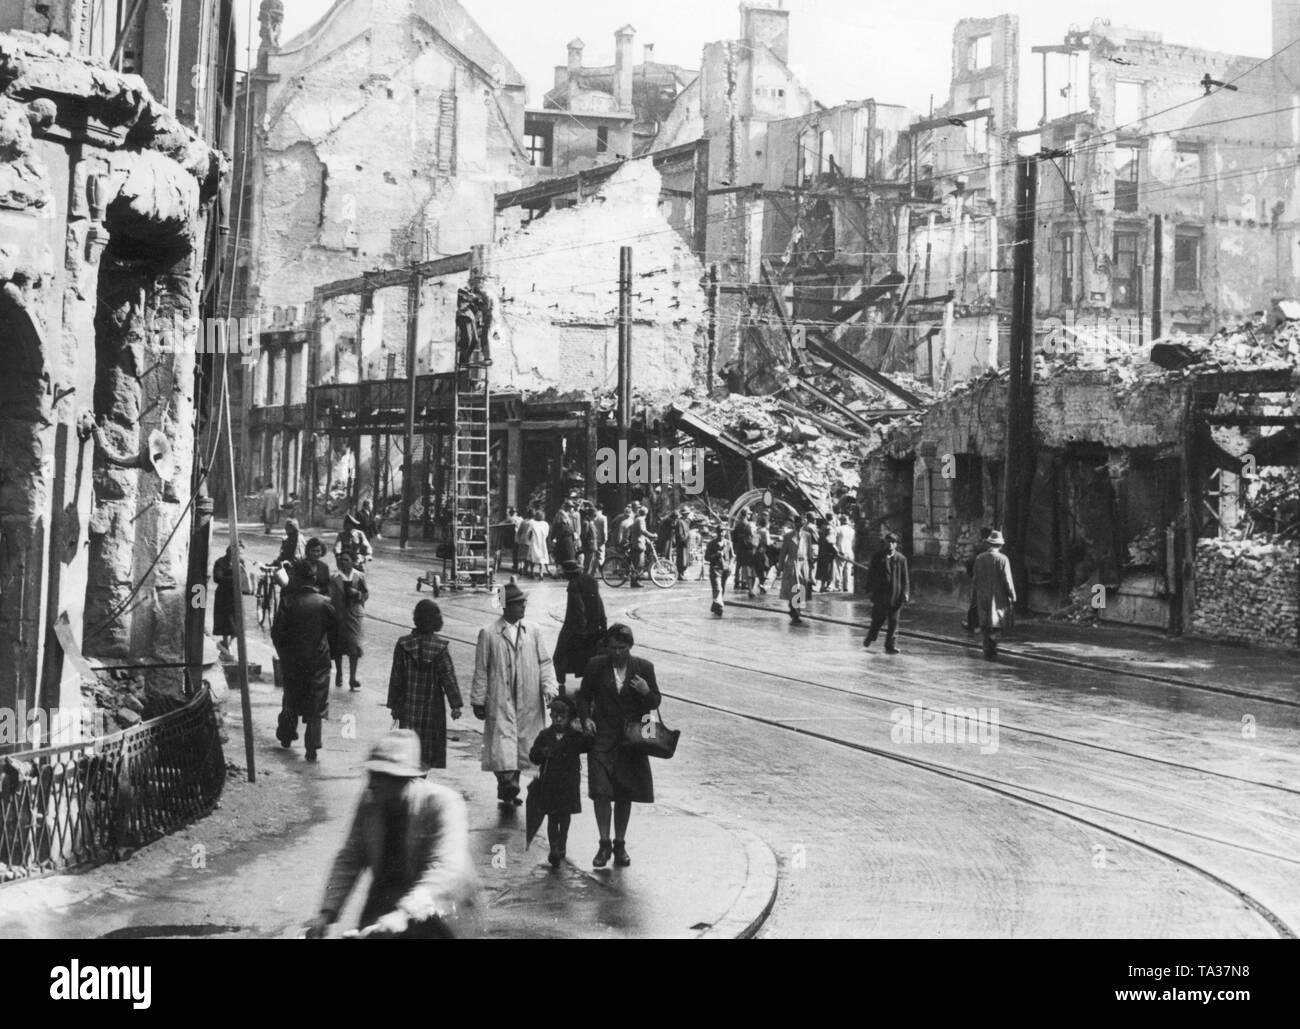 The Theatinerstrasse corner Maffeistrasse in Munich after the end of the war. - Stock Image